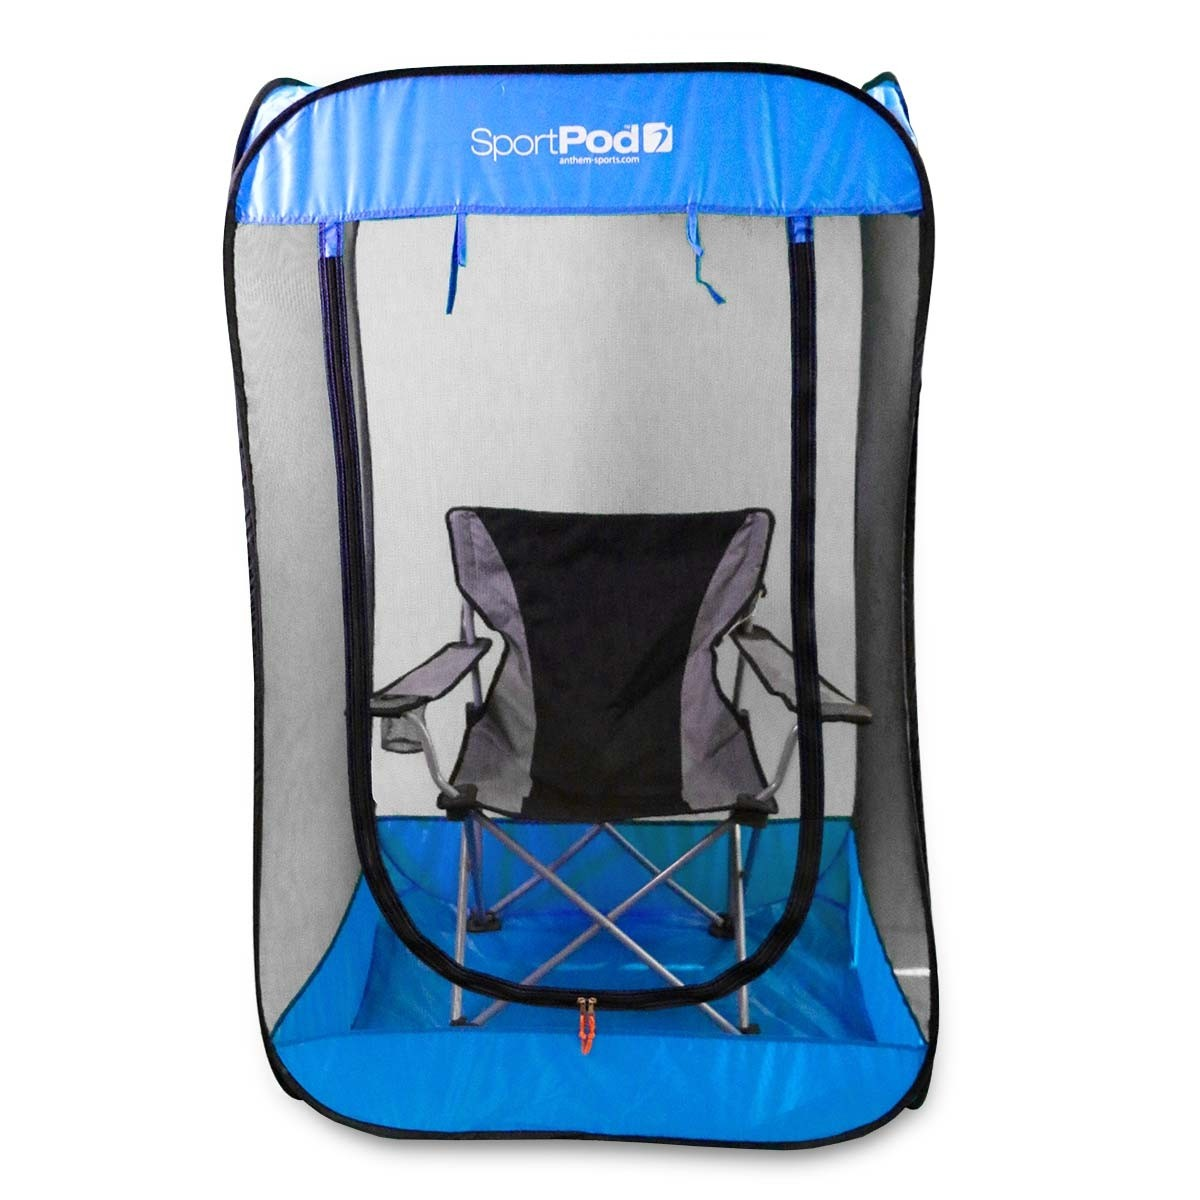 chair under cover red nwpa clone recipe bugpod undercover sportpod pop up insect screen tent